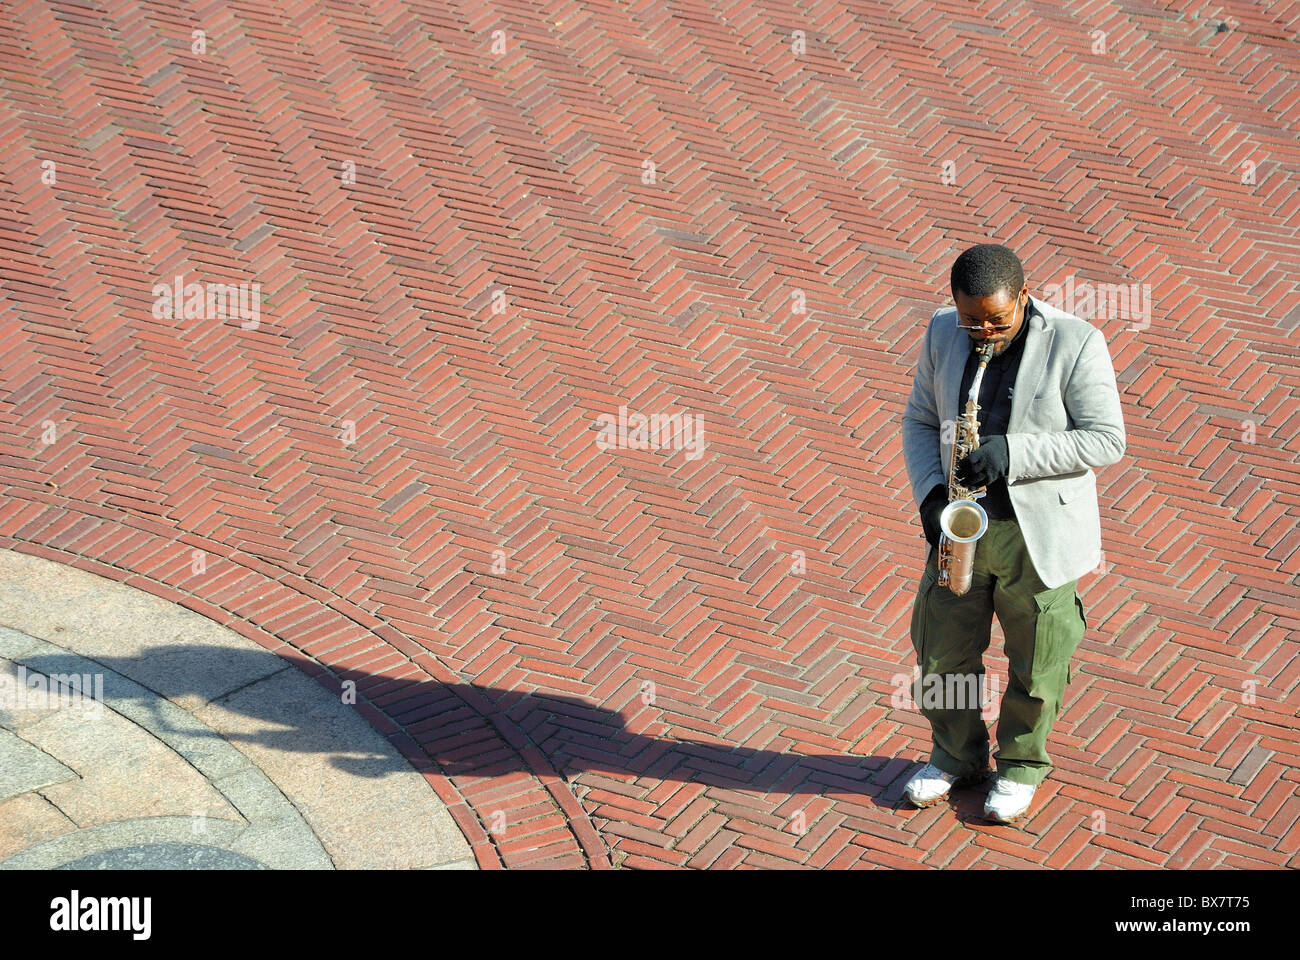 A saxophonist busking in Central Park's Bethesda Terrace. - Stock Image